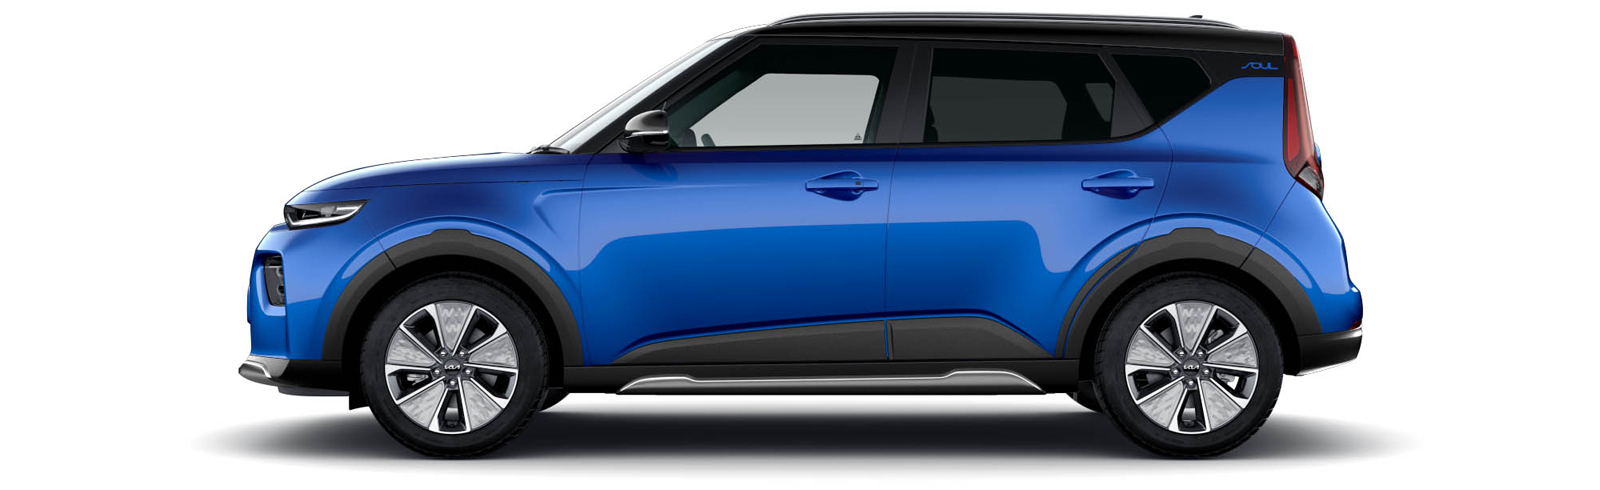 The Kia Soul EV Maxx is launched in the UK